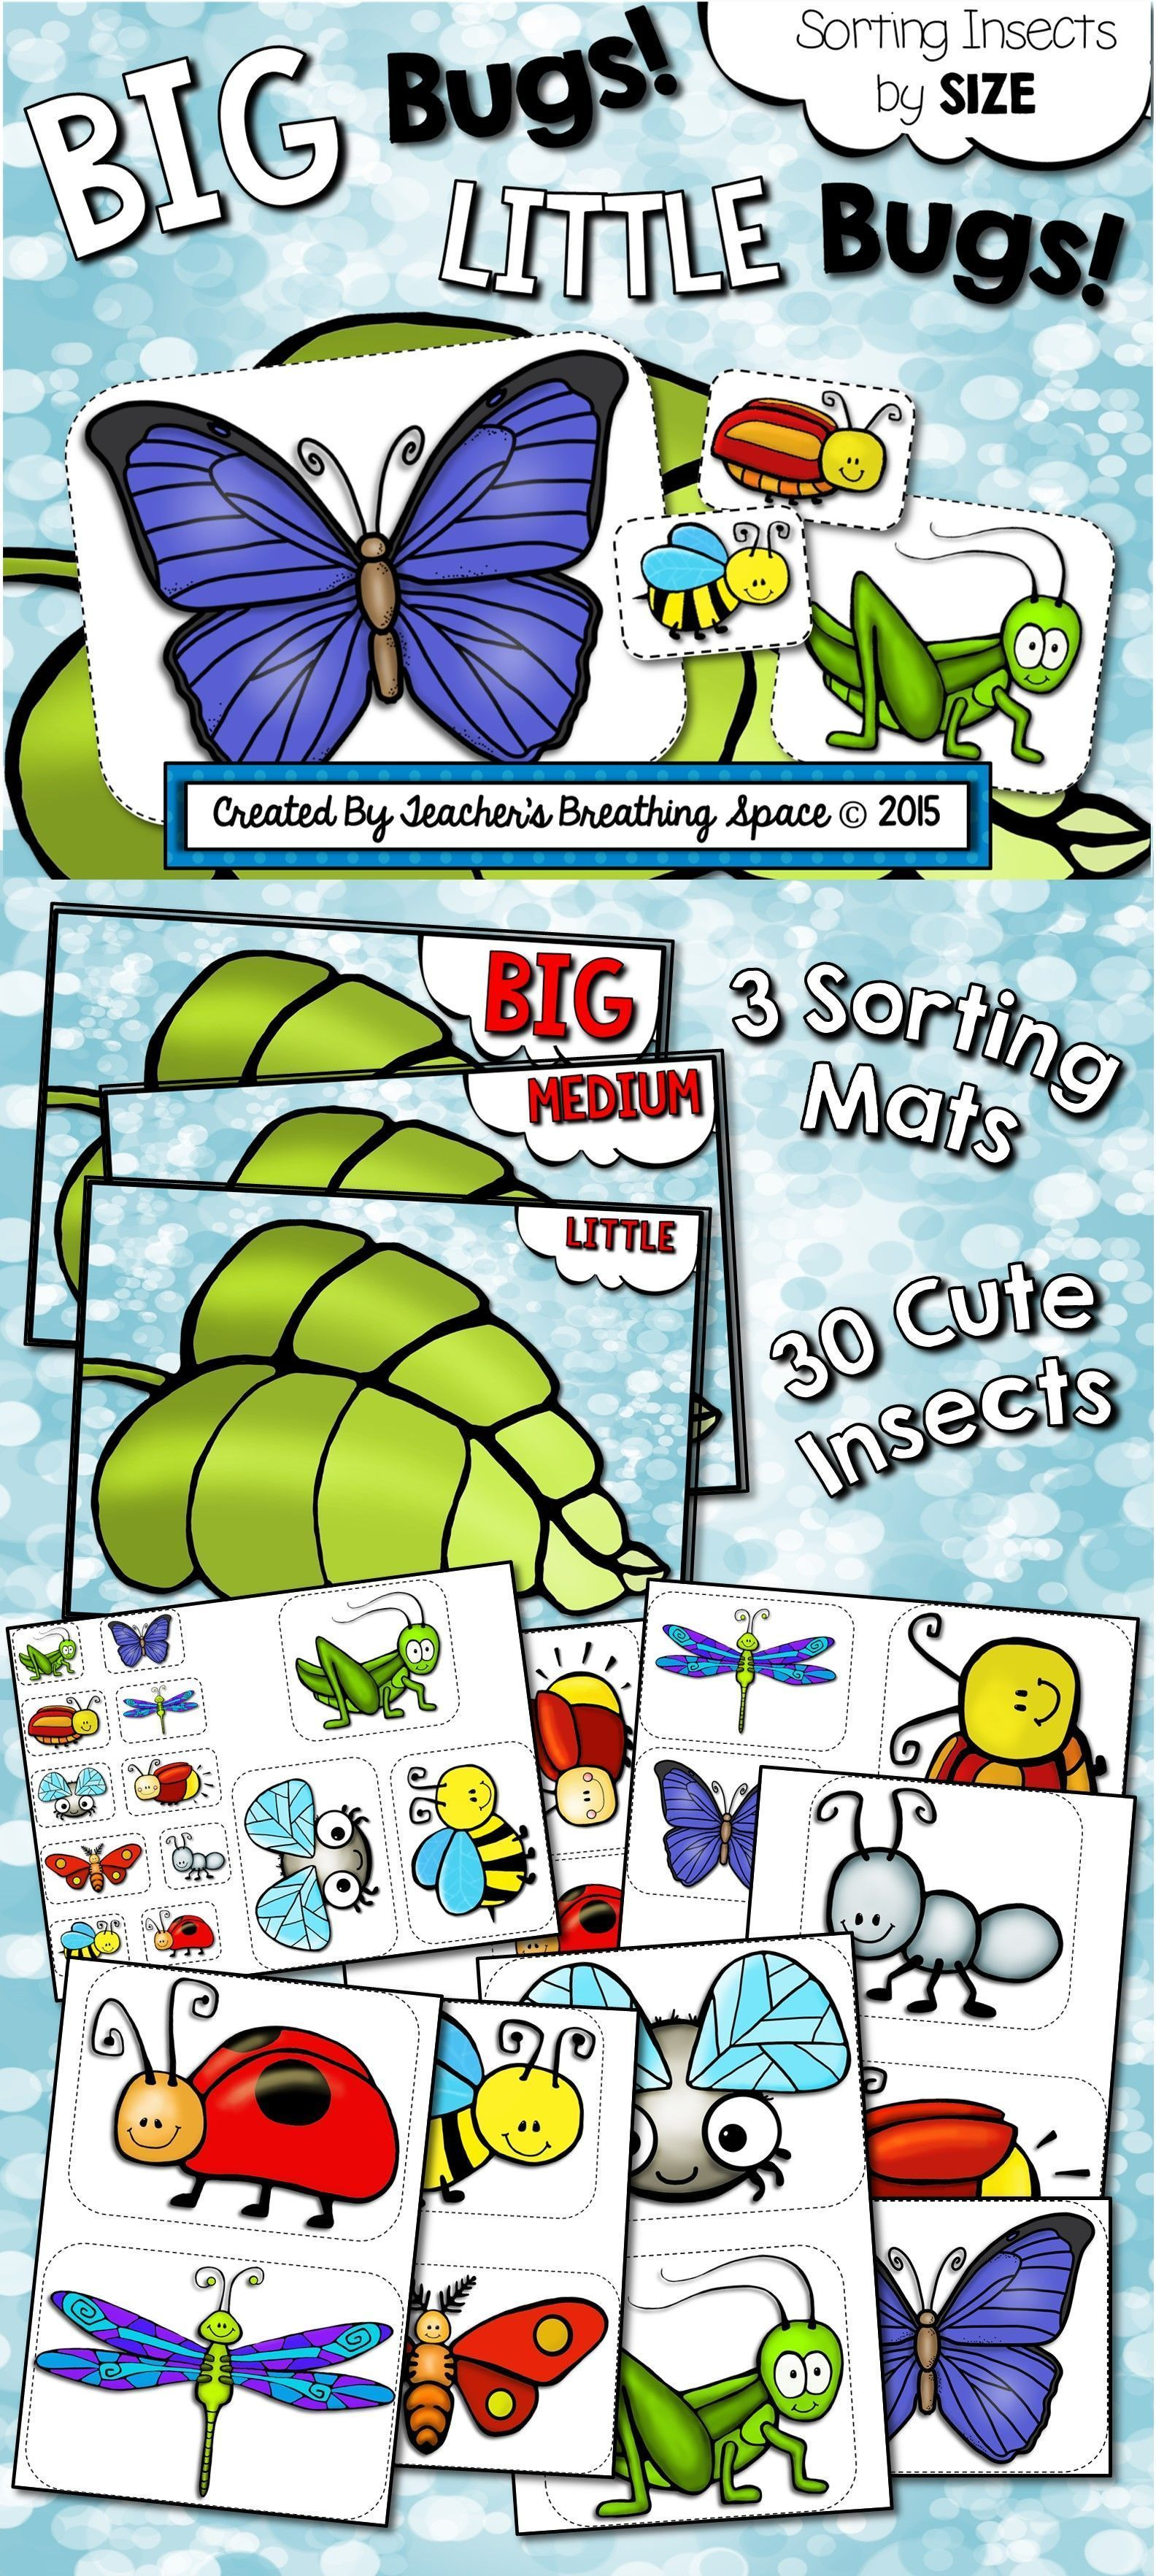 Bug Sorting Insect Sorting By Size Spring Sorting